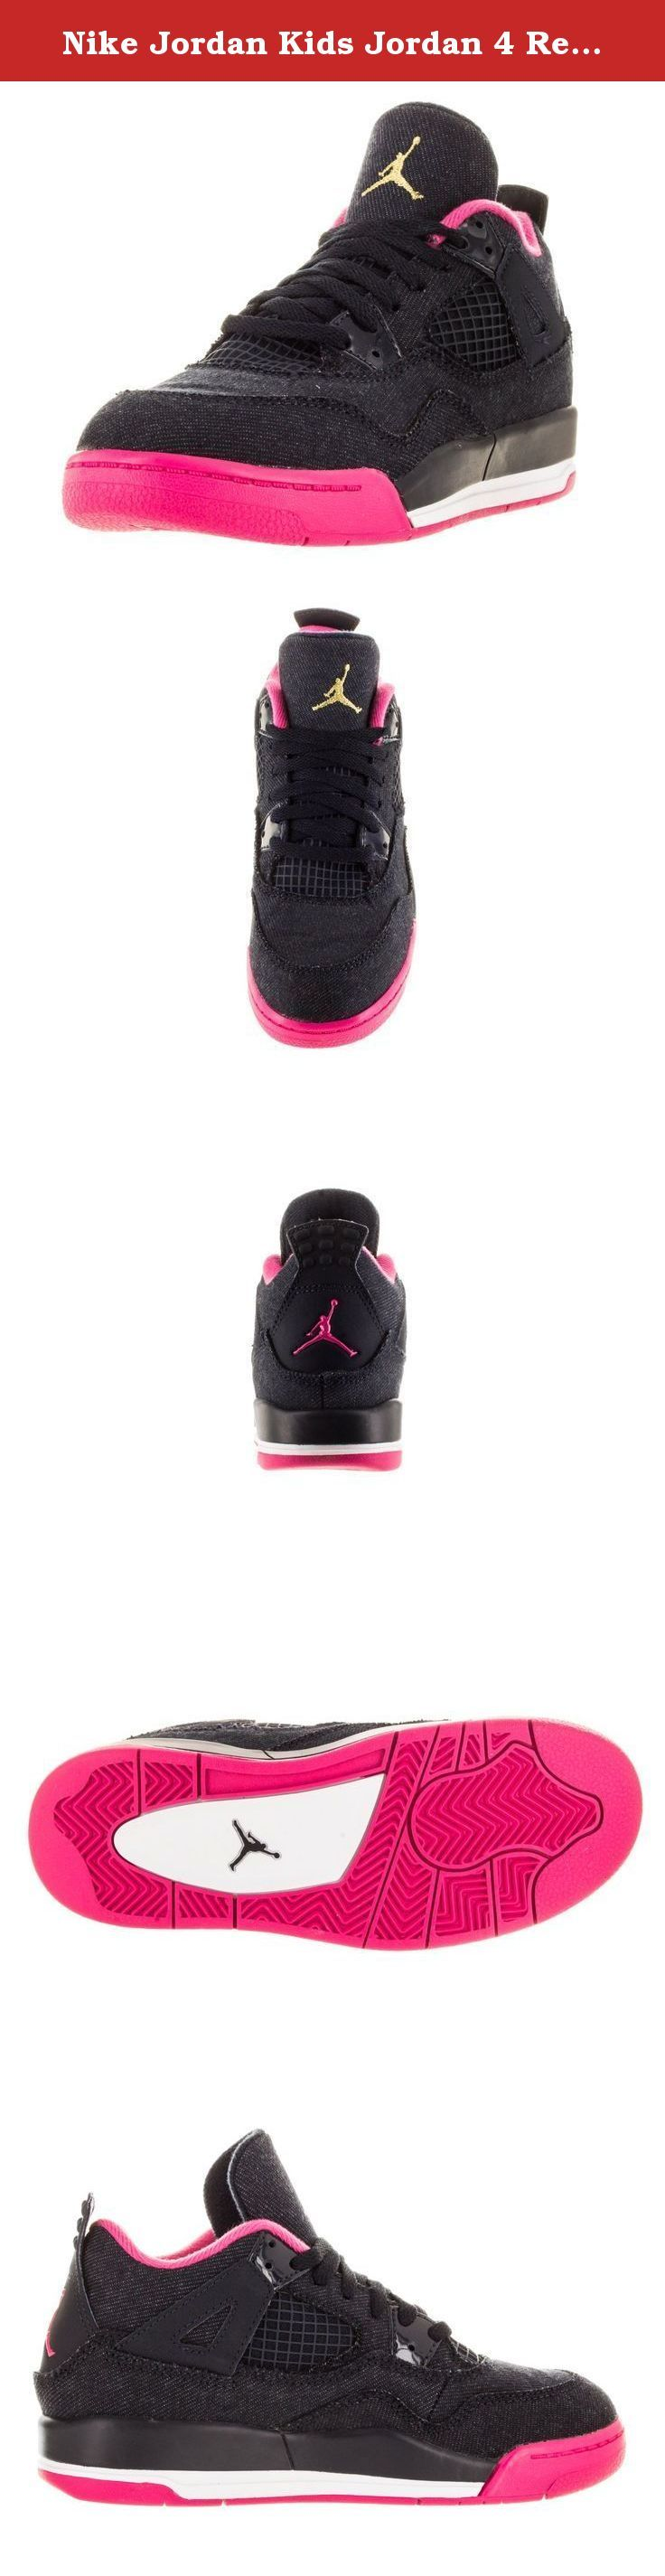 """Nike Jordan Kids Jordan 4 Retro Gp Drk Obsdn/Mtllc Gld/Vvd Pnk/Wh Basketball Shoe 2 Kids US. Built by Tinker and cemented into sneakerhead history by Spike Lee's, """"Do The Right Thing"""", the Air Jordan 4 is the fourth model crafted for the Jordan line."""